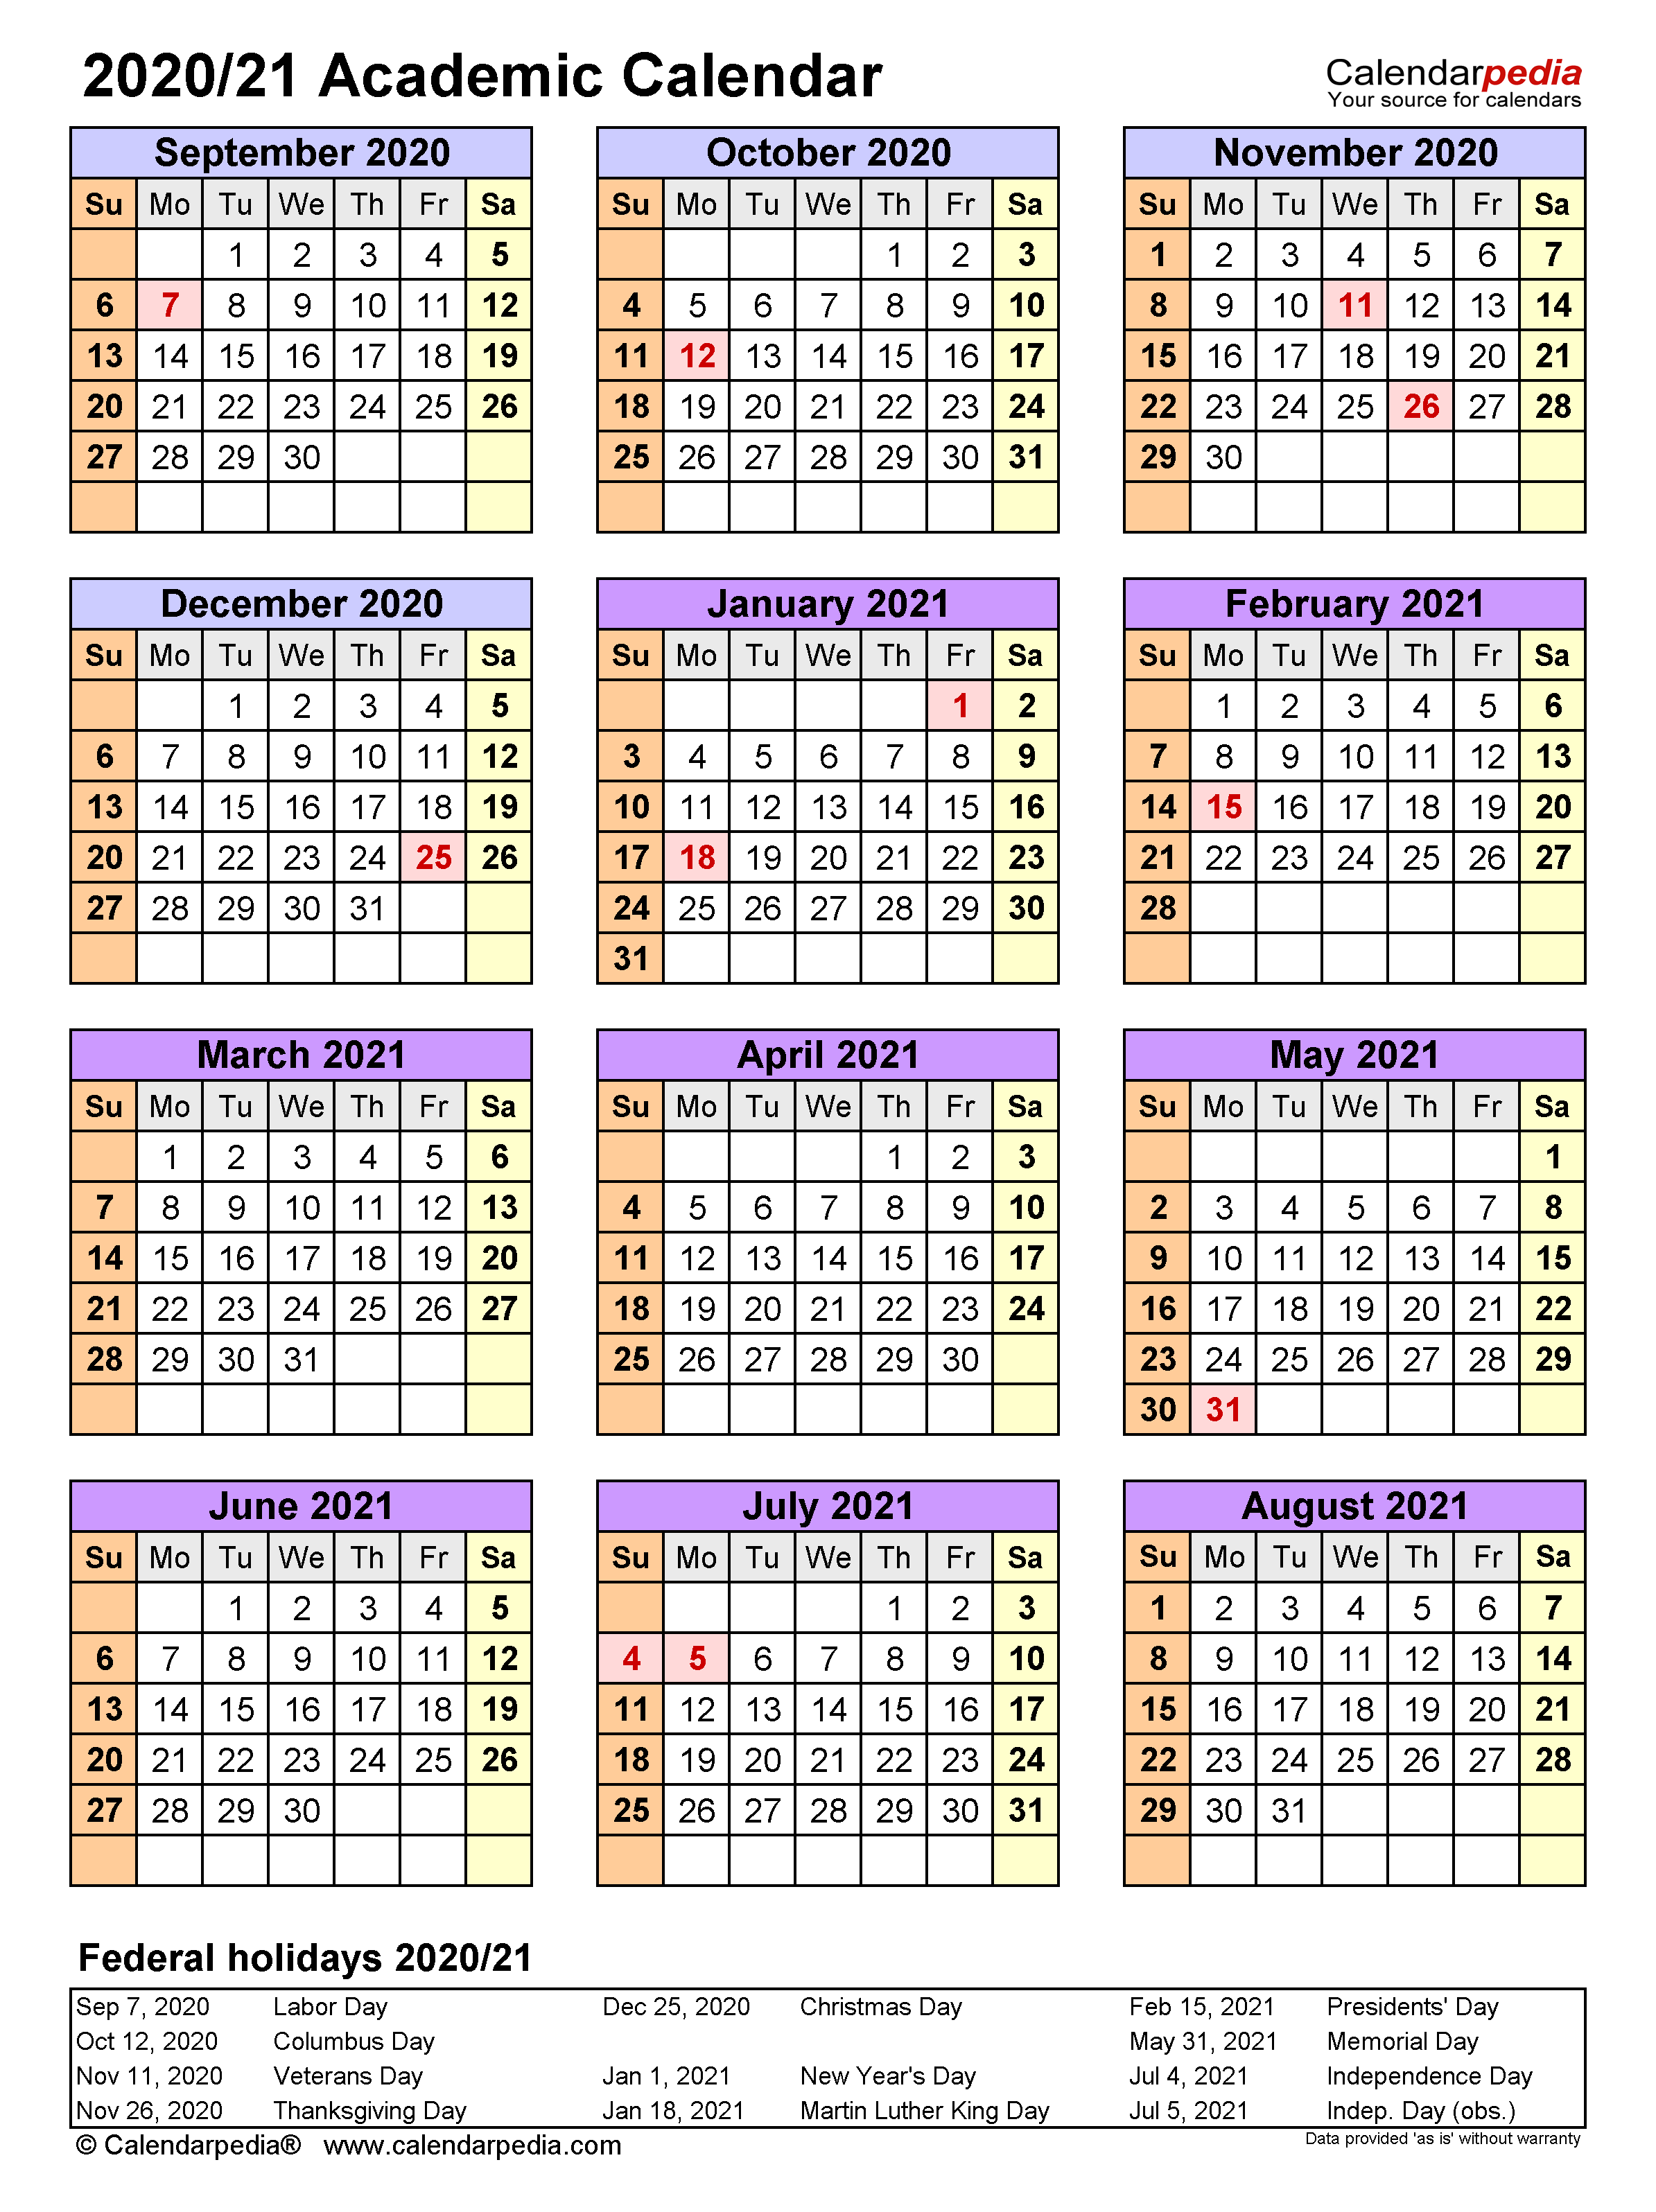 Academic Calendars 2020/2021 - Free Printable Word Templates